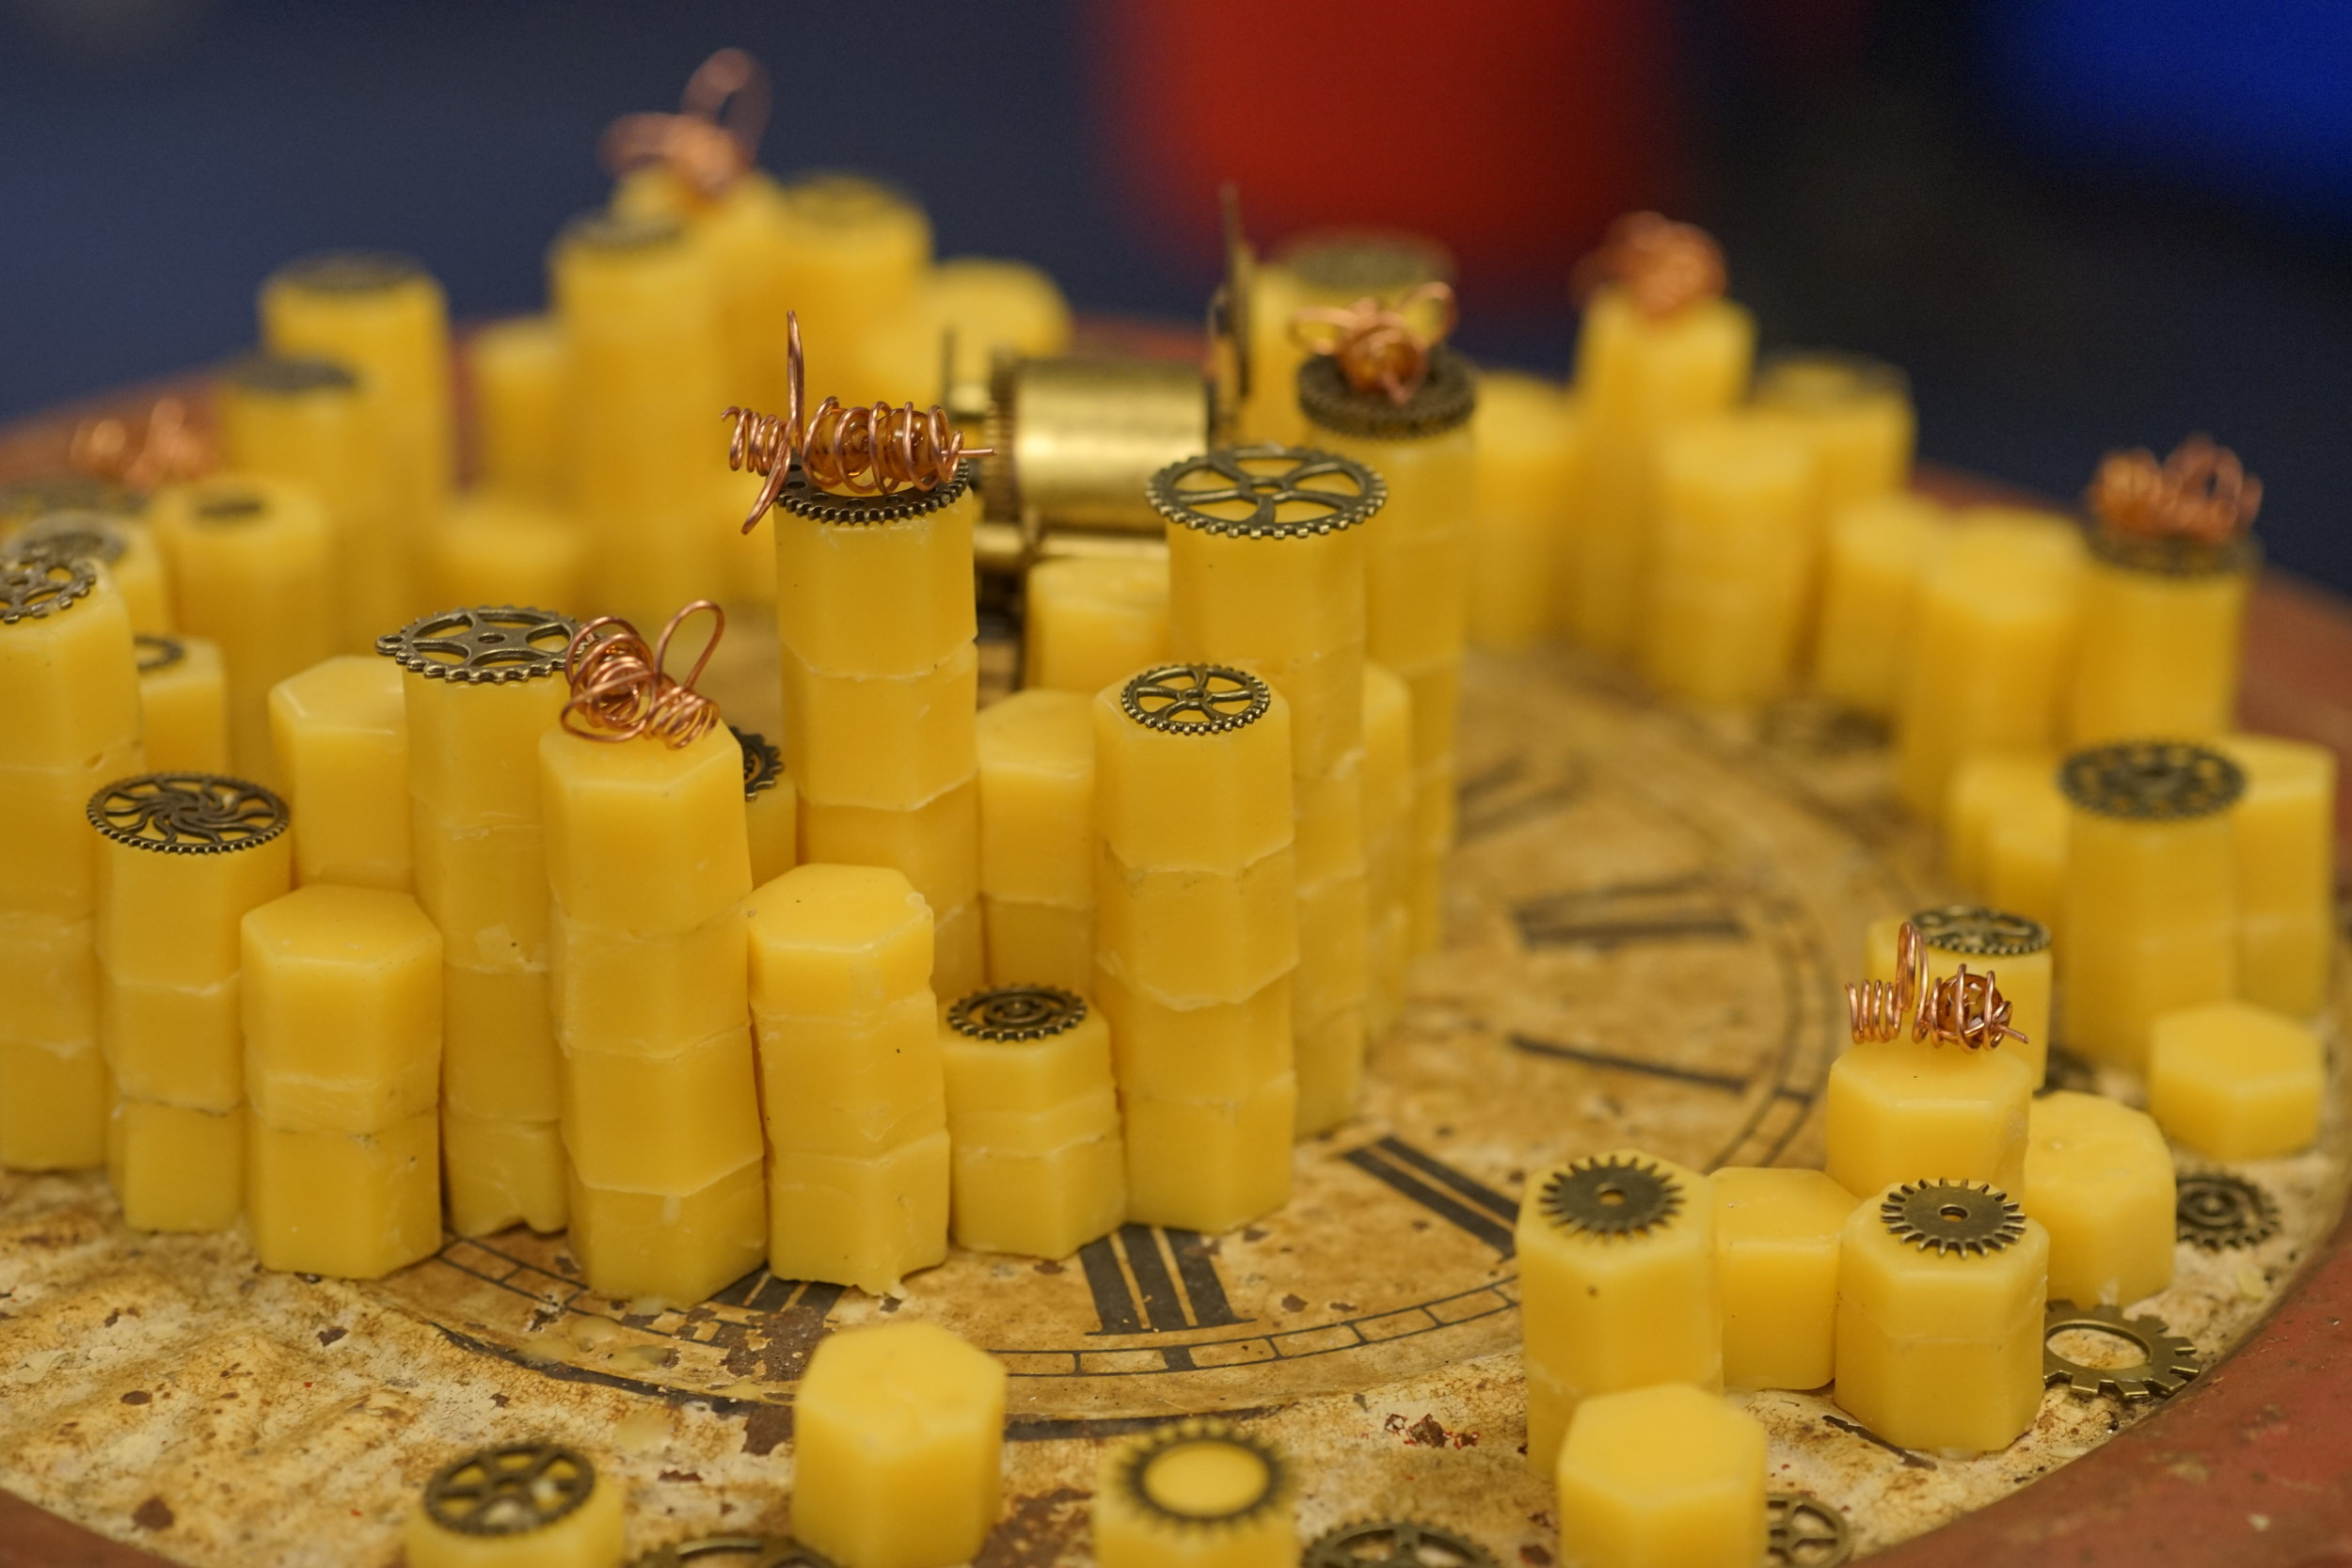 LAUREN NEVILLE - BEEHIVE COMPLEXITY THEORY   Sculpture.     Beehive Complexity Theory  combines an antique clock and old parts with honeycomb shaped stacks of beeswax. The piece uses small copper wire renderings of bees to talk about the similarities between complexity theory in beehives and mechanics.